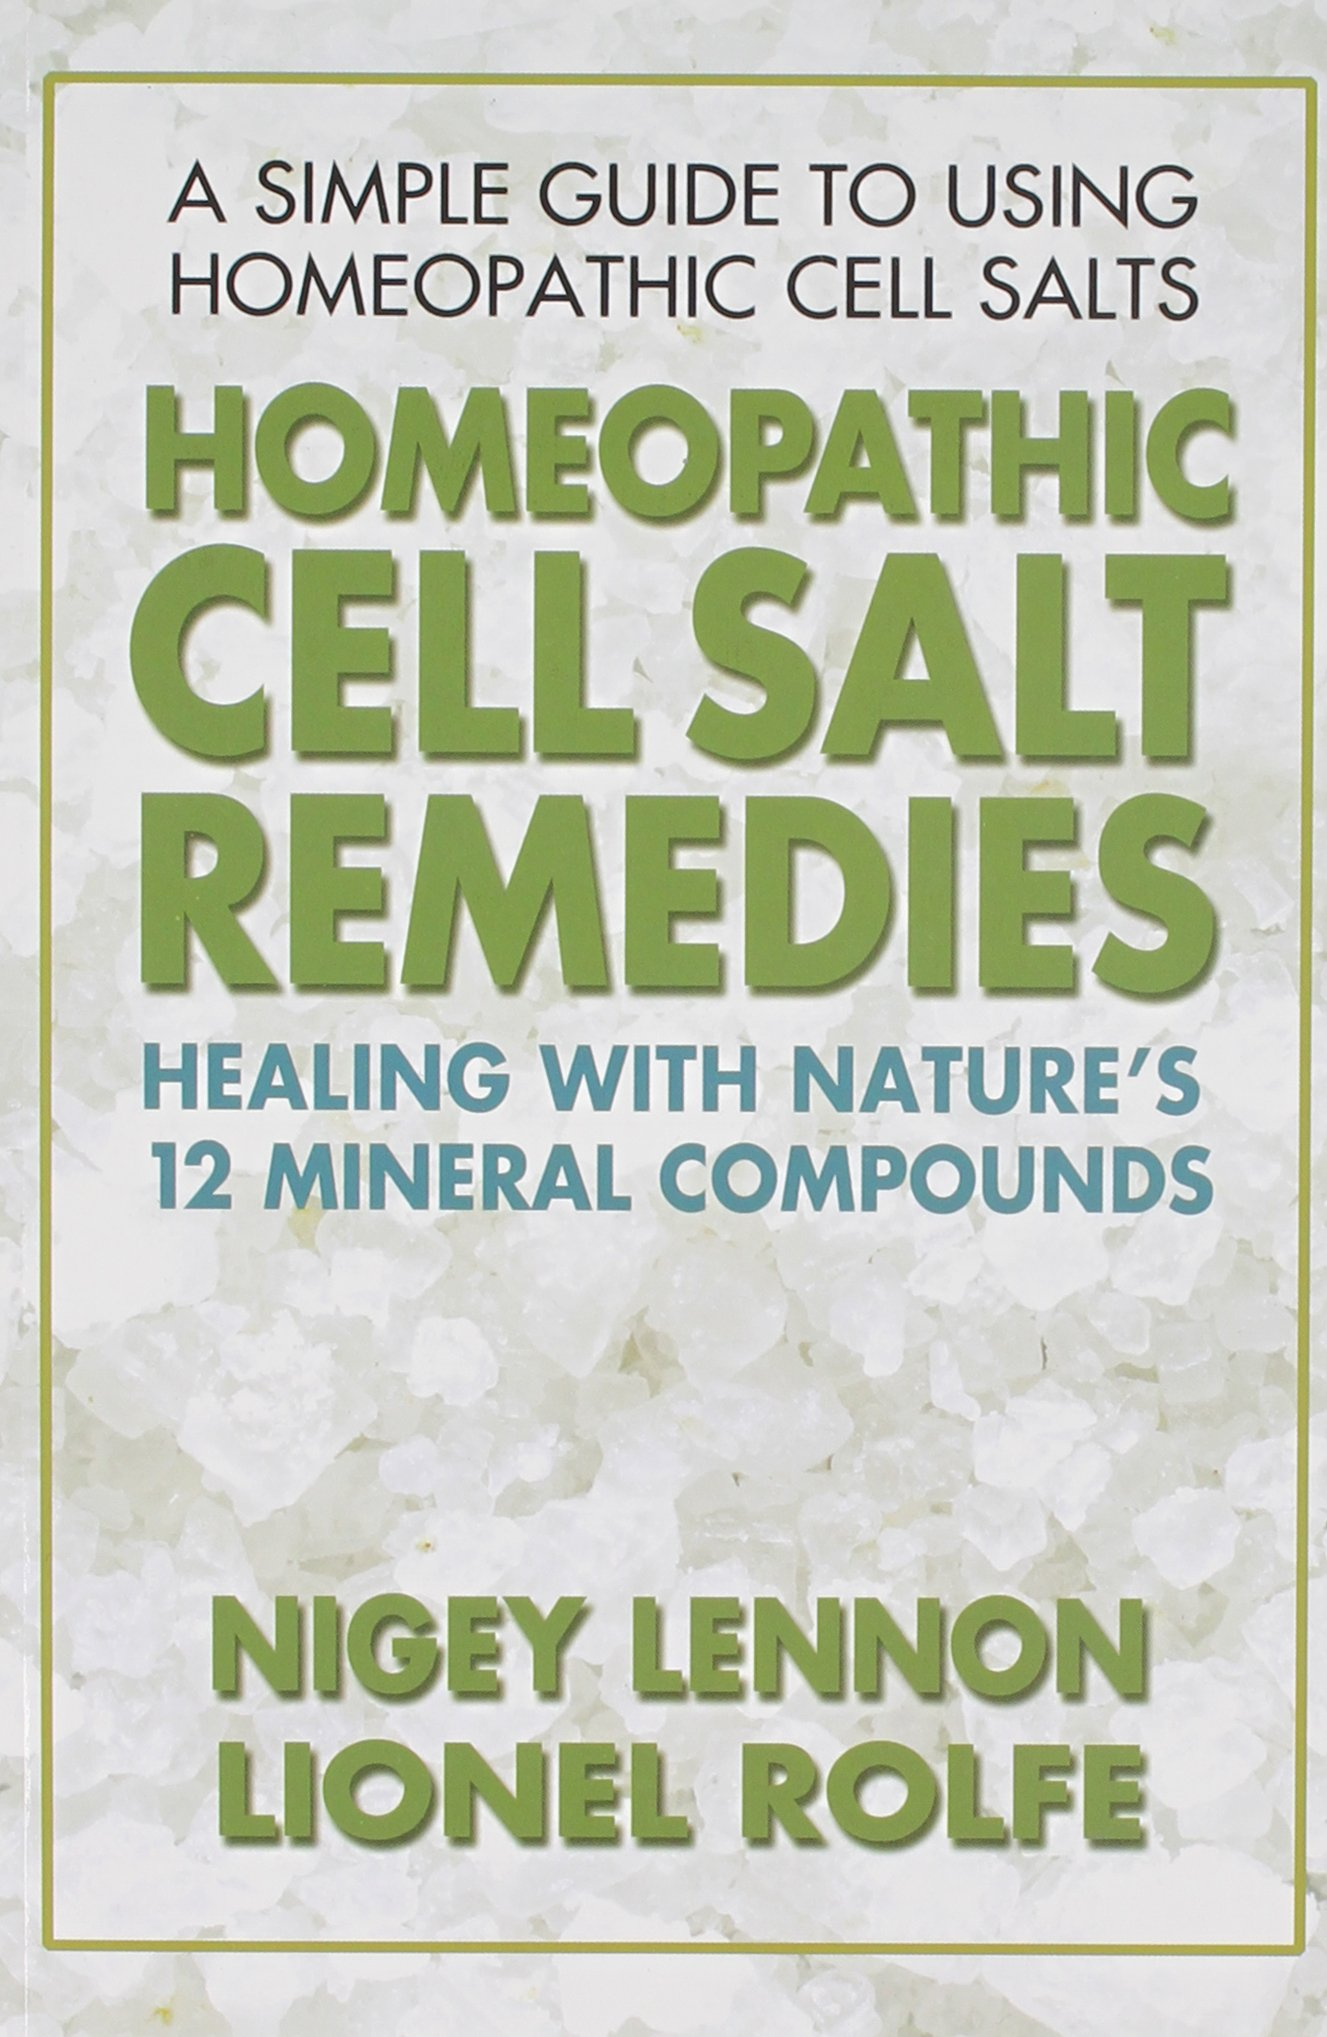 12 tissue remedies in homeopathy pdf